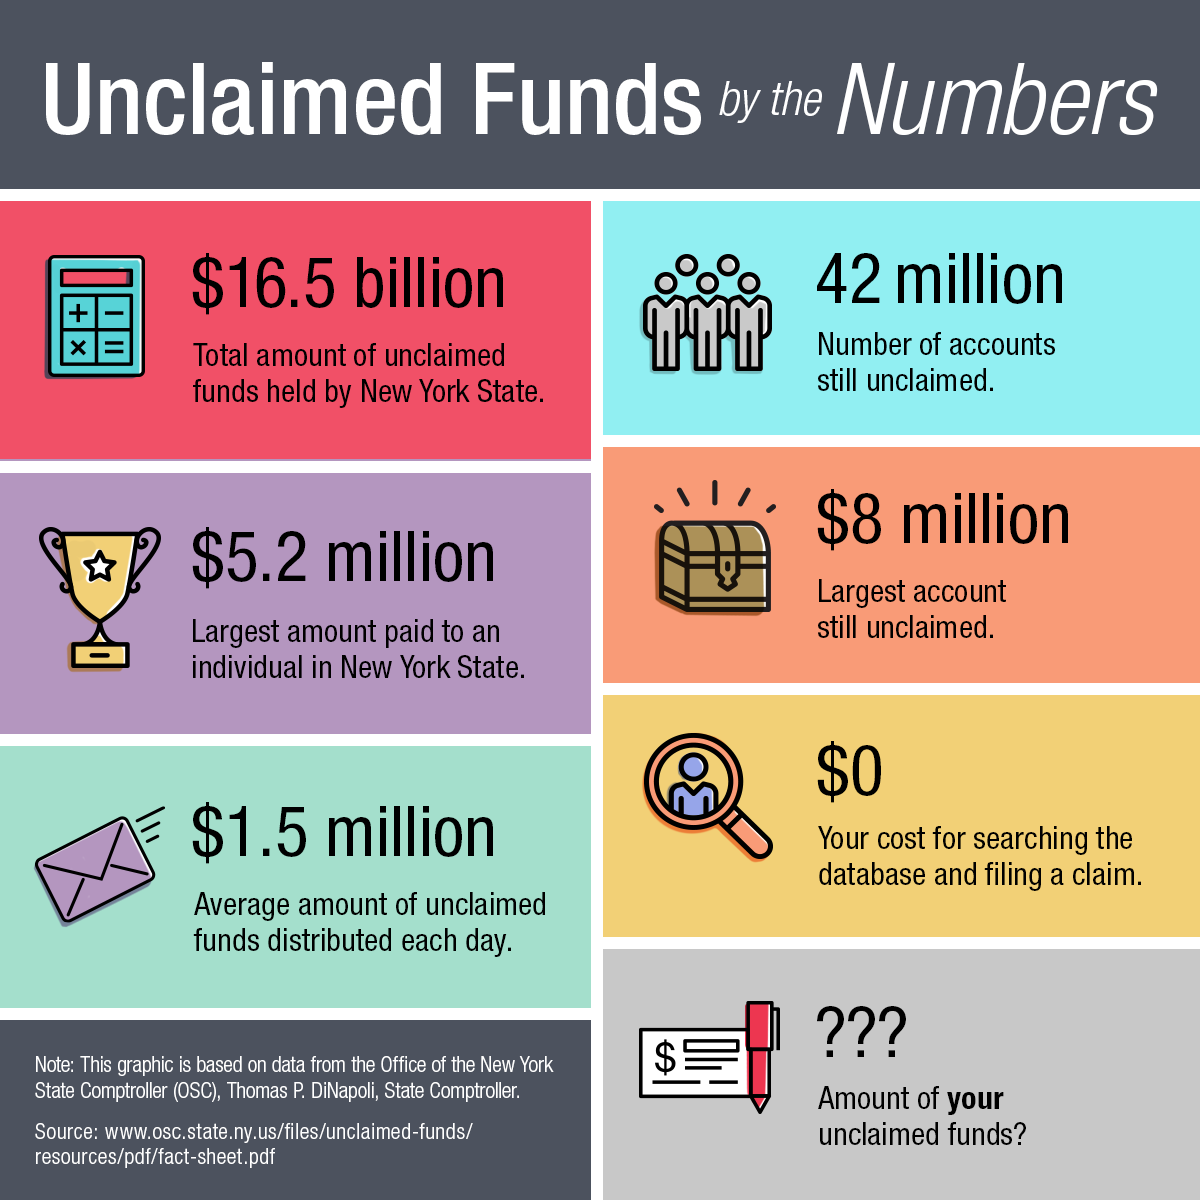 Unclaimed Funds by the Numbers